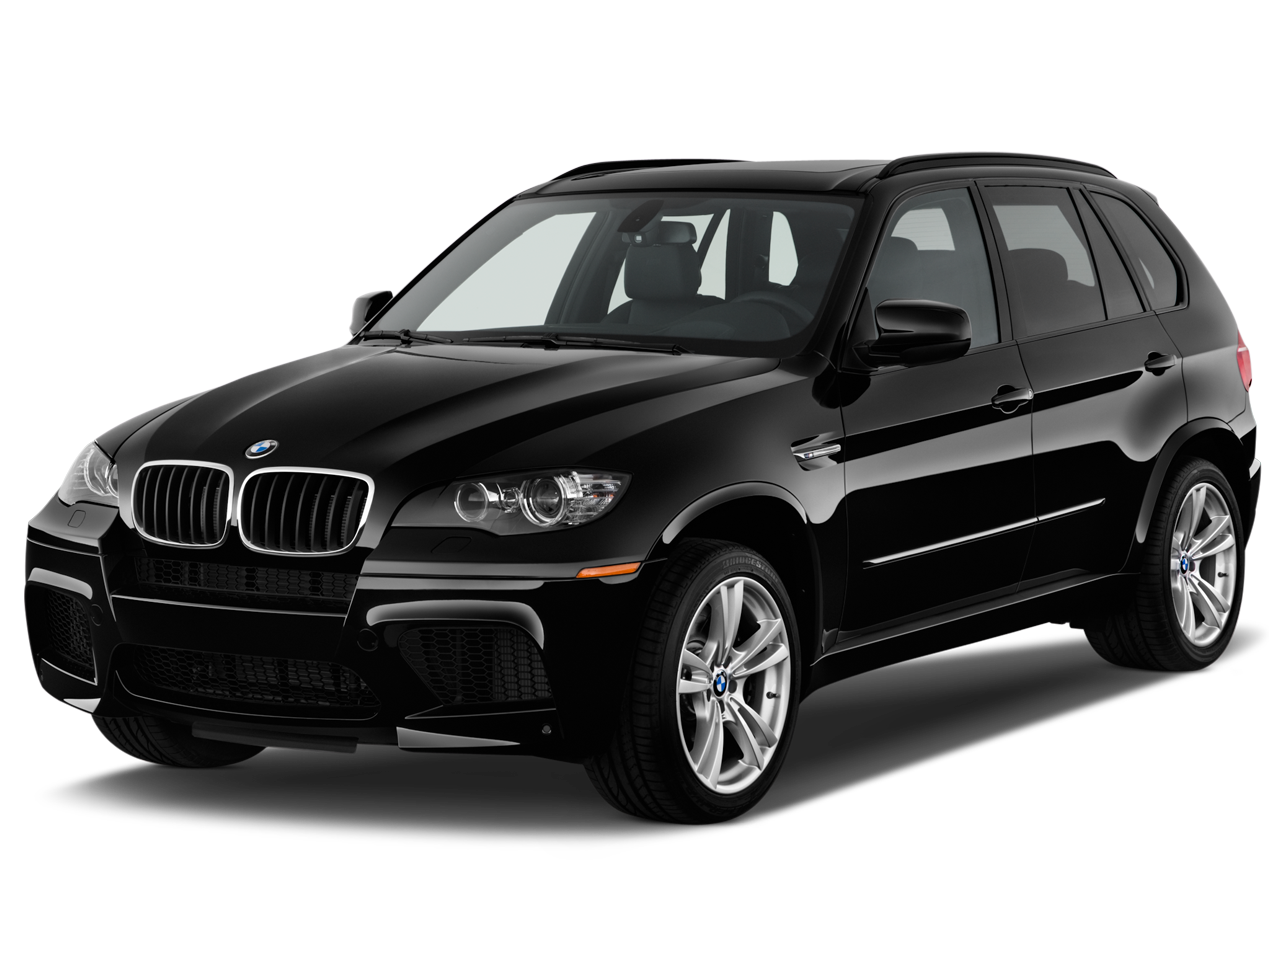 Bmw front png. Images transparent free download